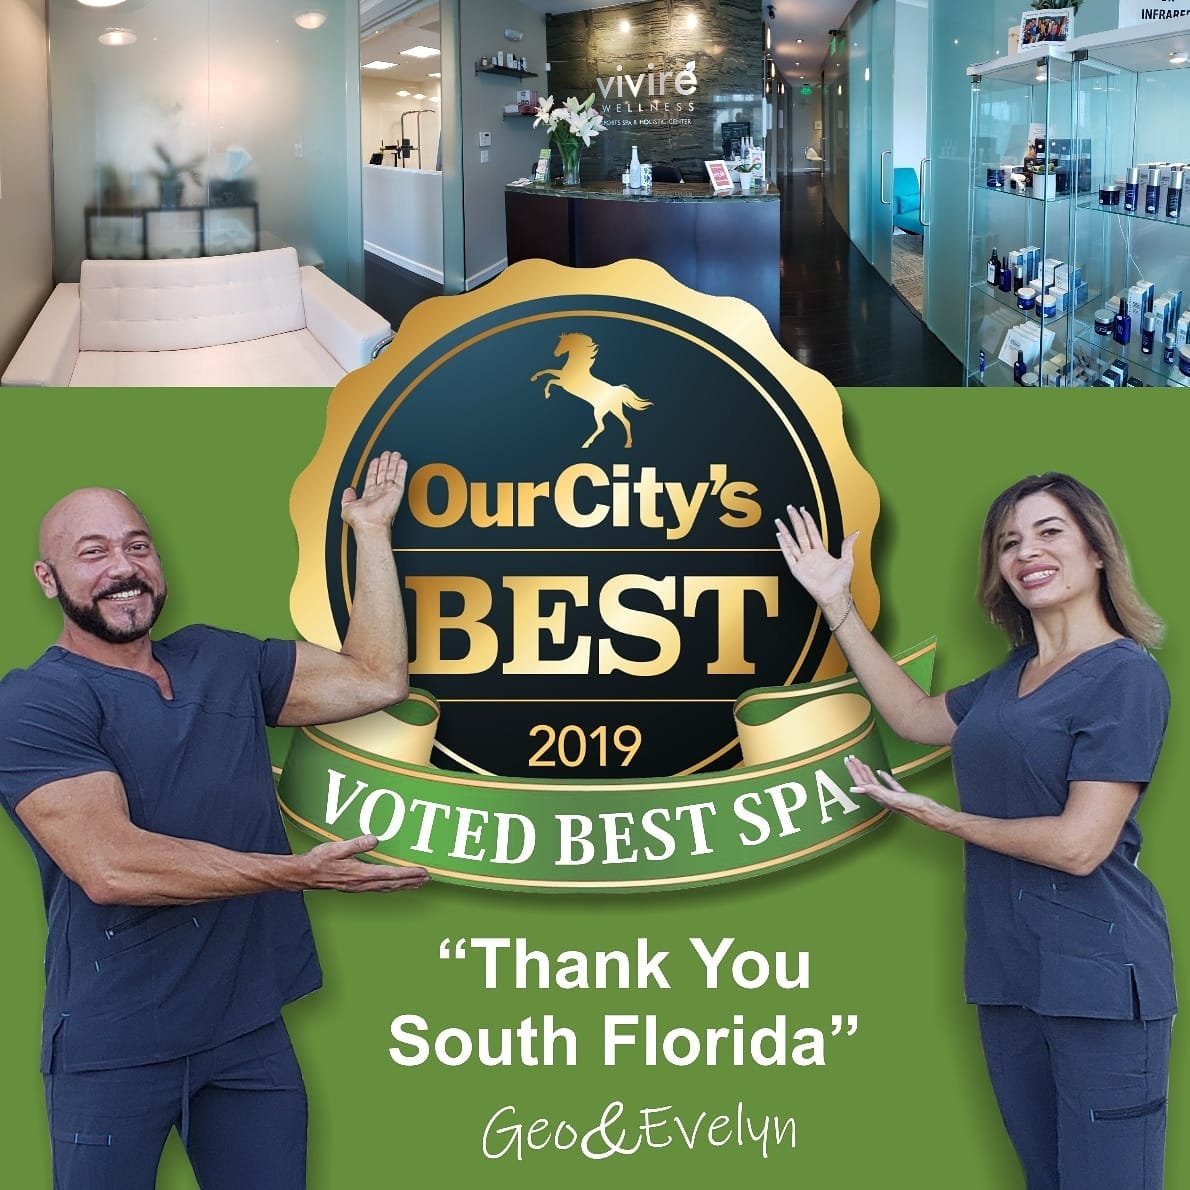 best health spa voted 2019